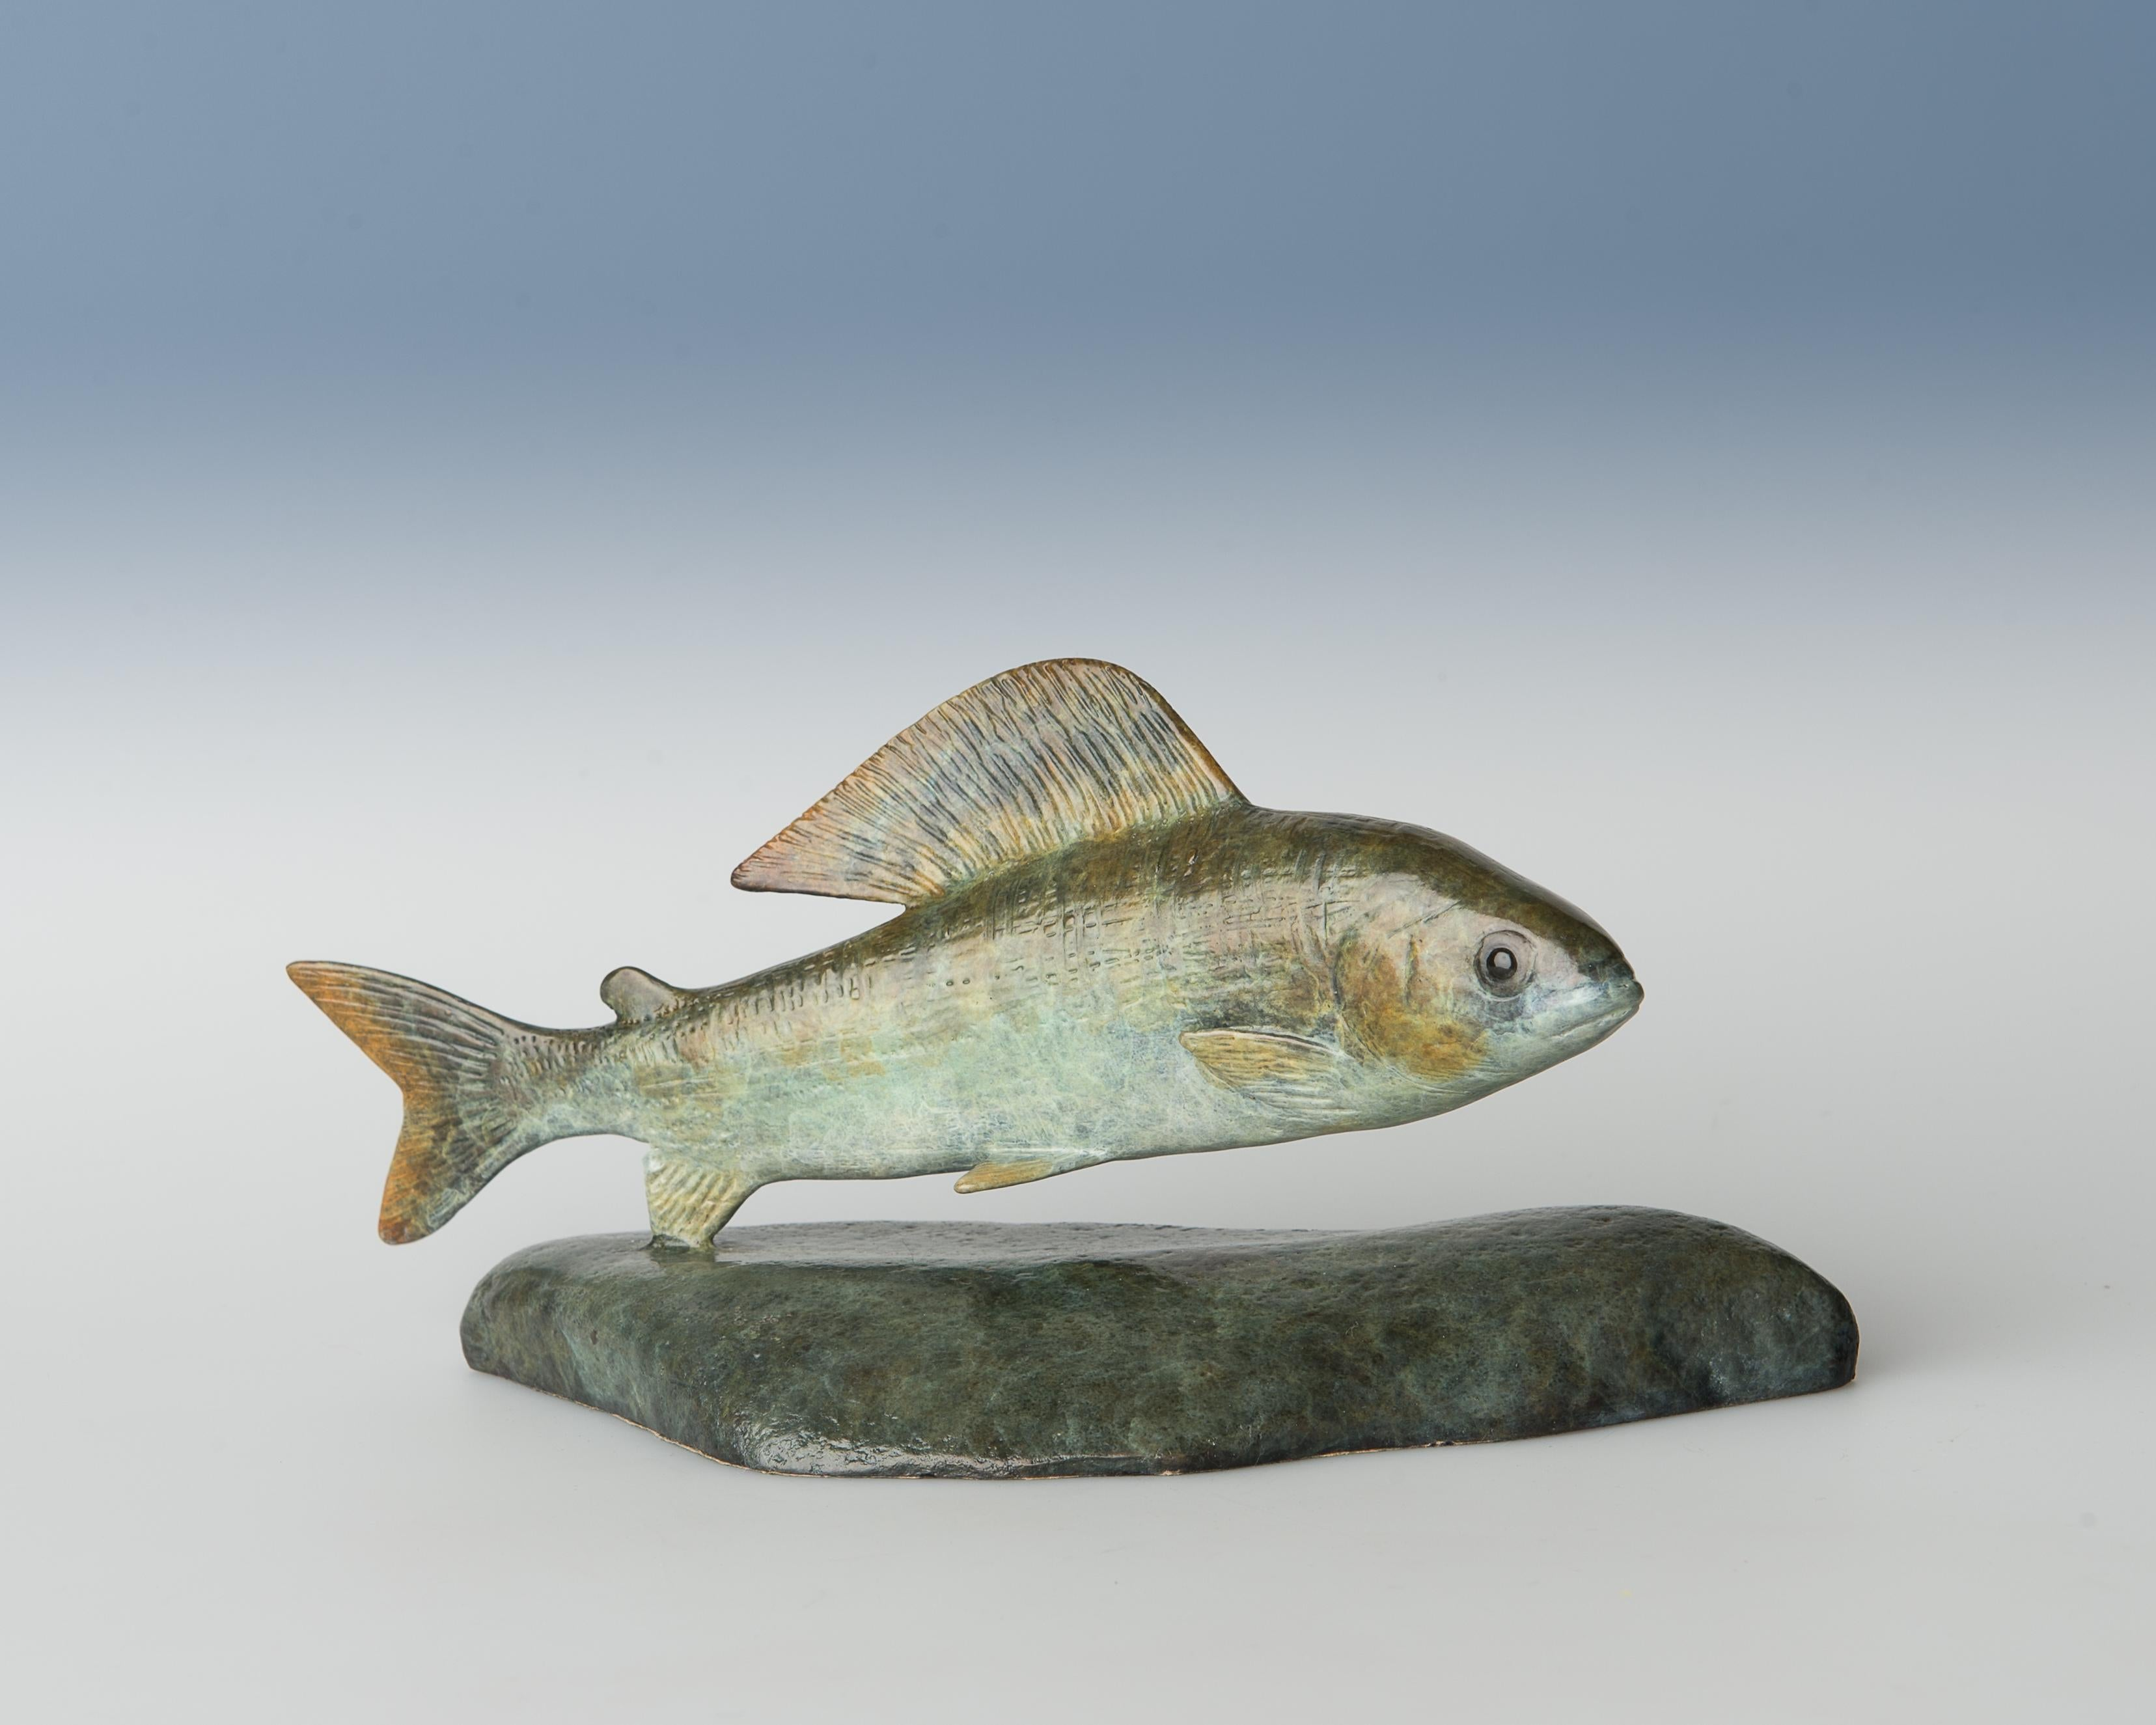 Contemporary Bronze Wildlife Fish Sculpture 'Grayling' by Richard Smith